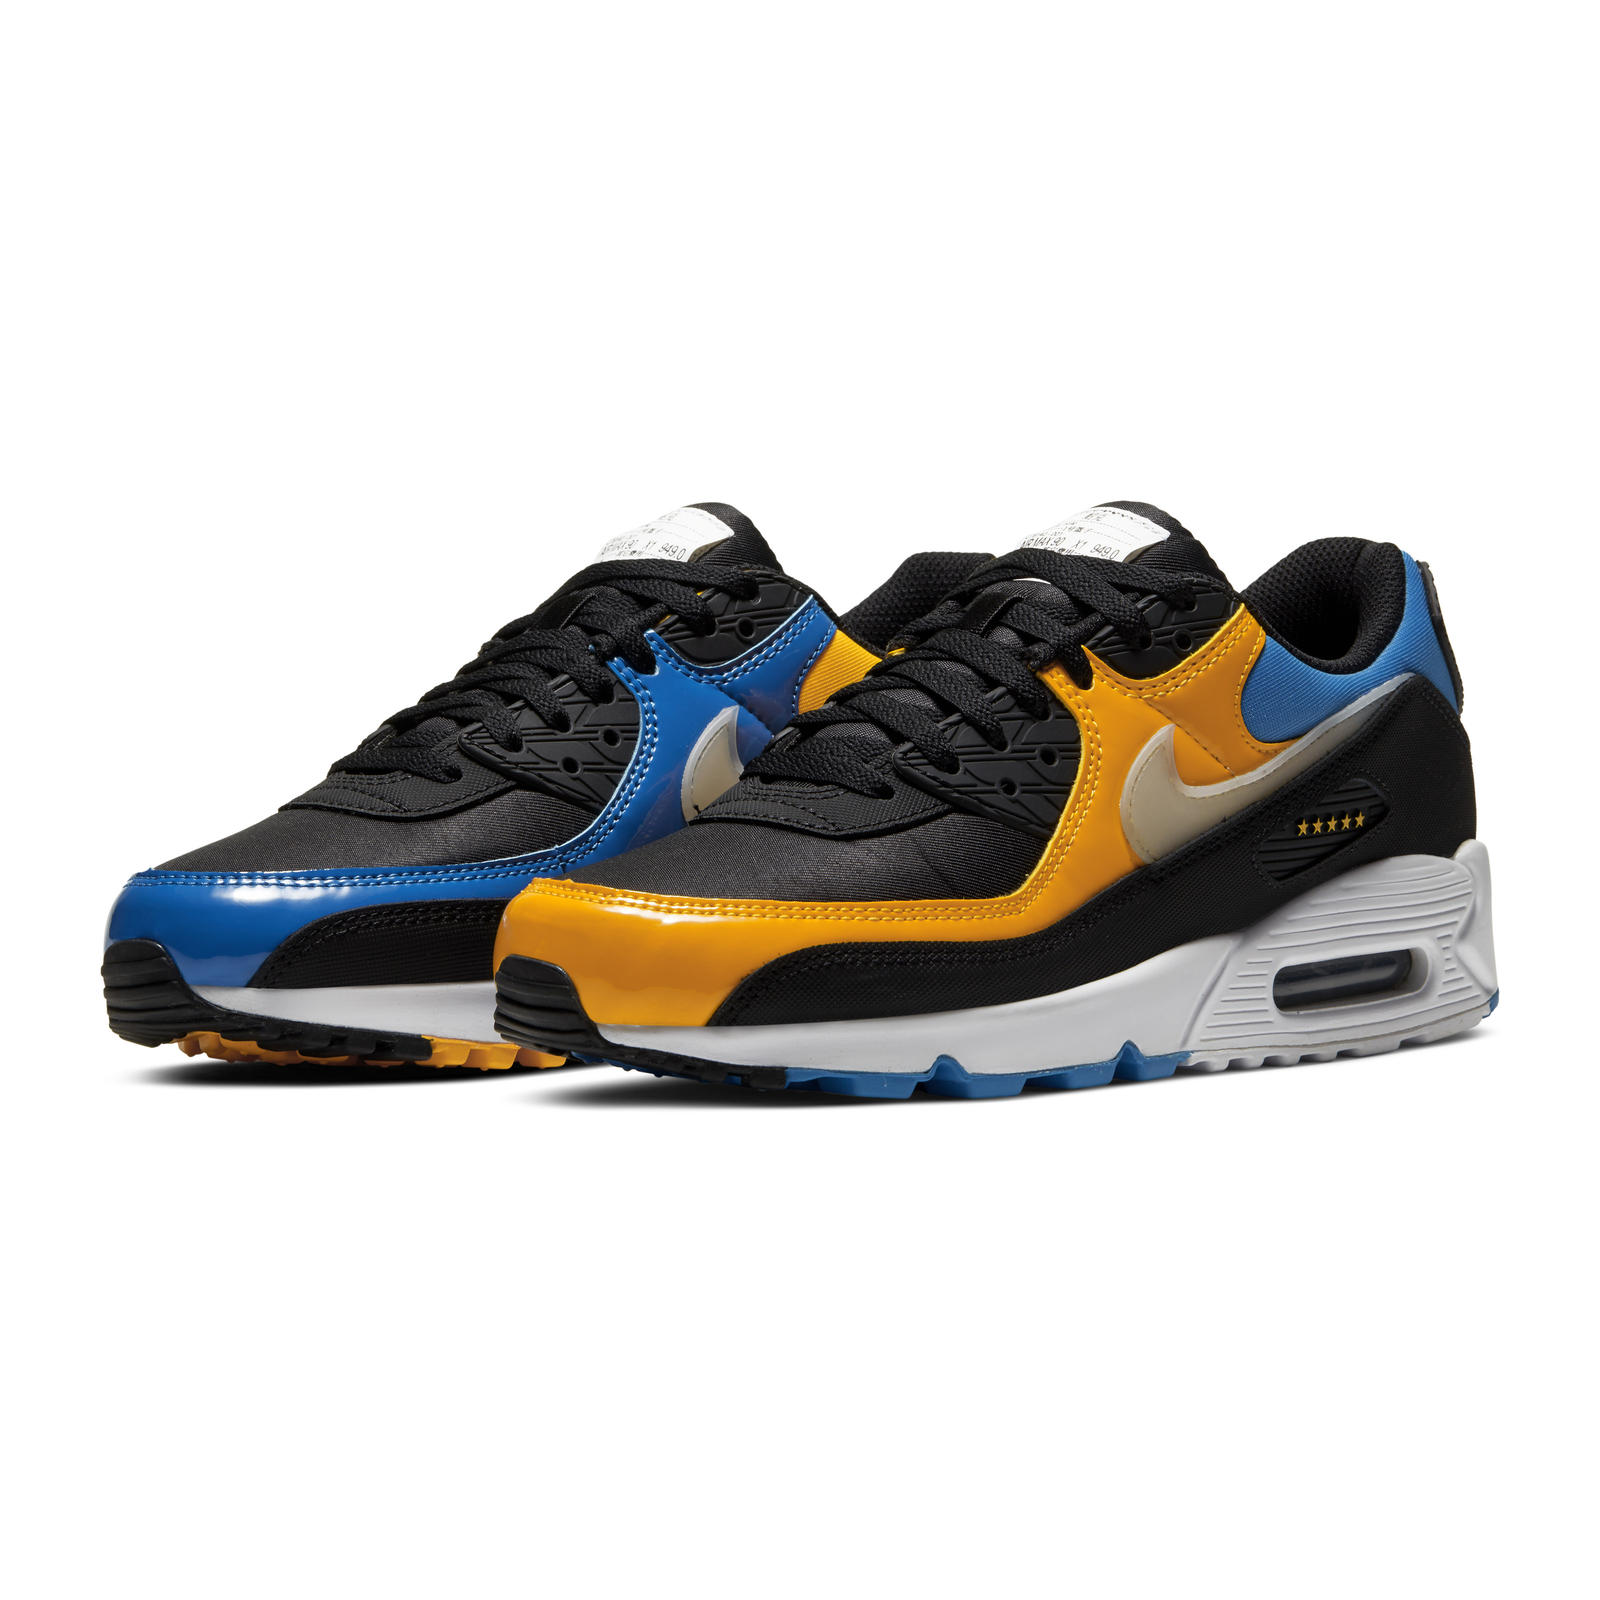 Nike Air Max 90 City Pack Shanghai